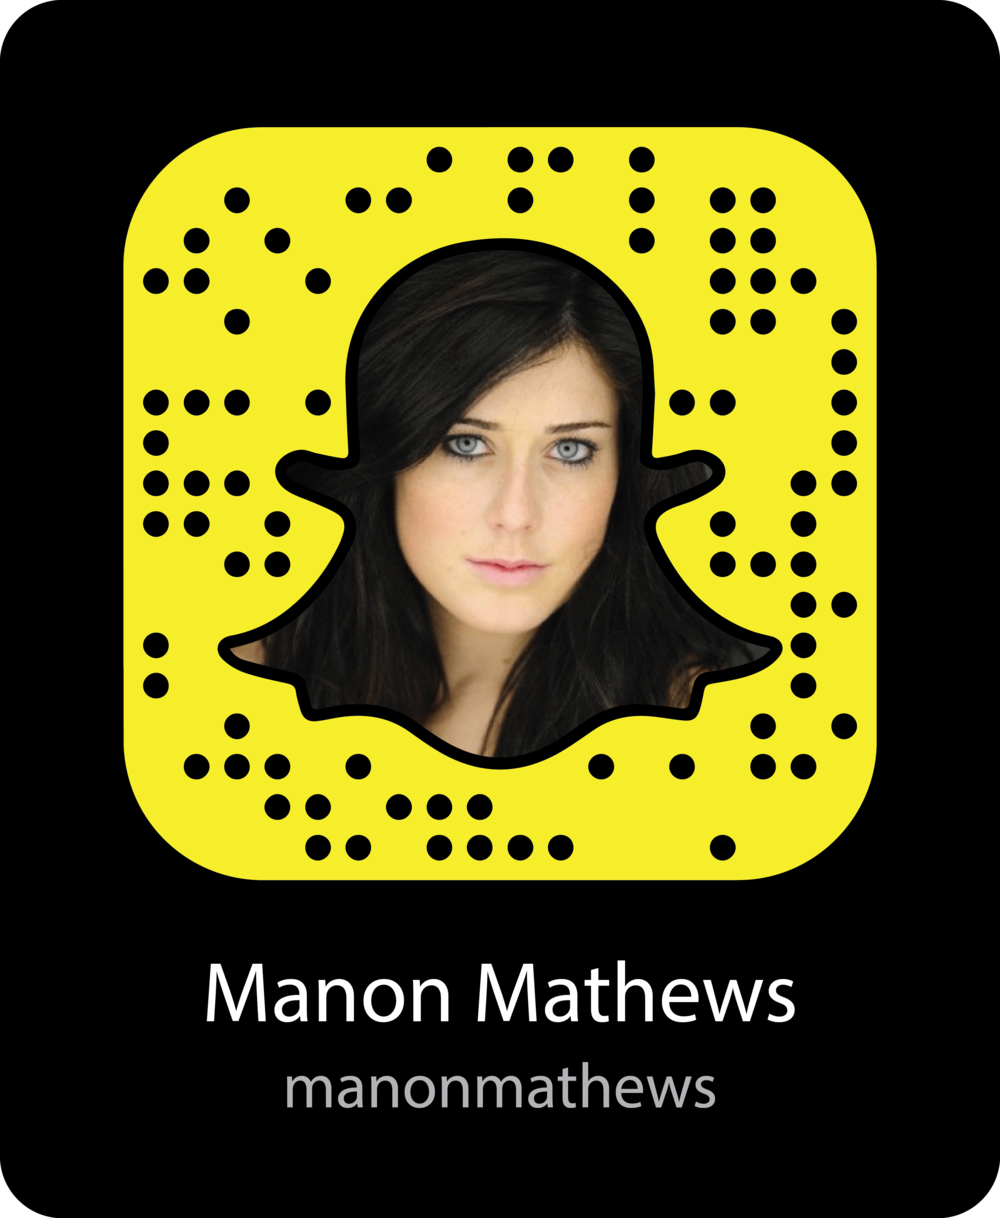 mannon-mathews-vine-celebrity-snapchat-snapcode